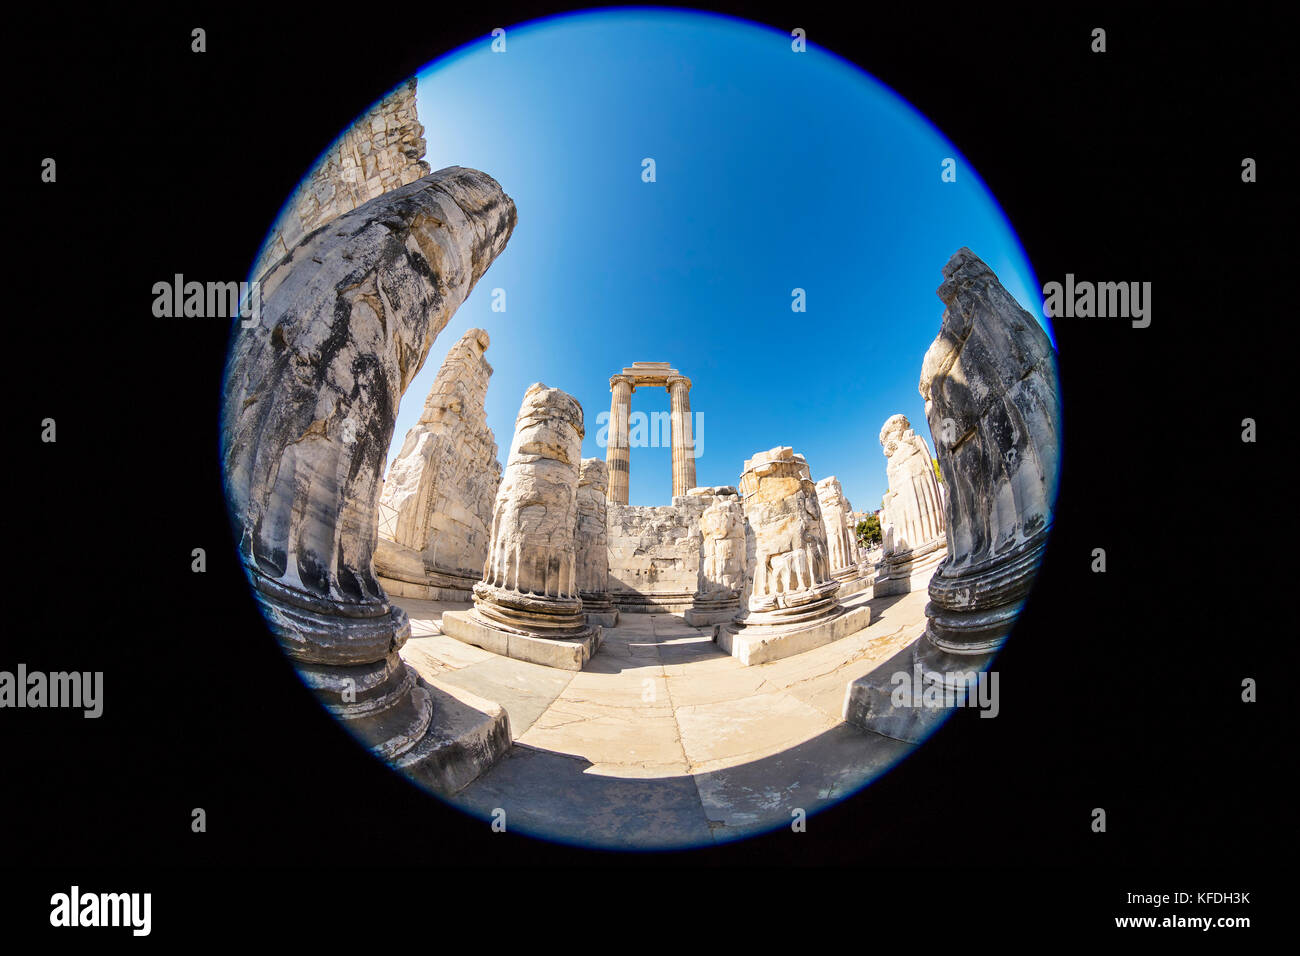 Ruins of the Apollo Temple in Didyma, Turkey.  Fish eye perspective. Stock Photo